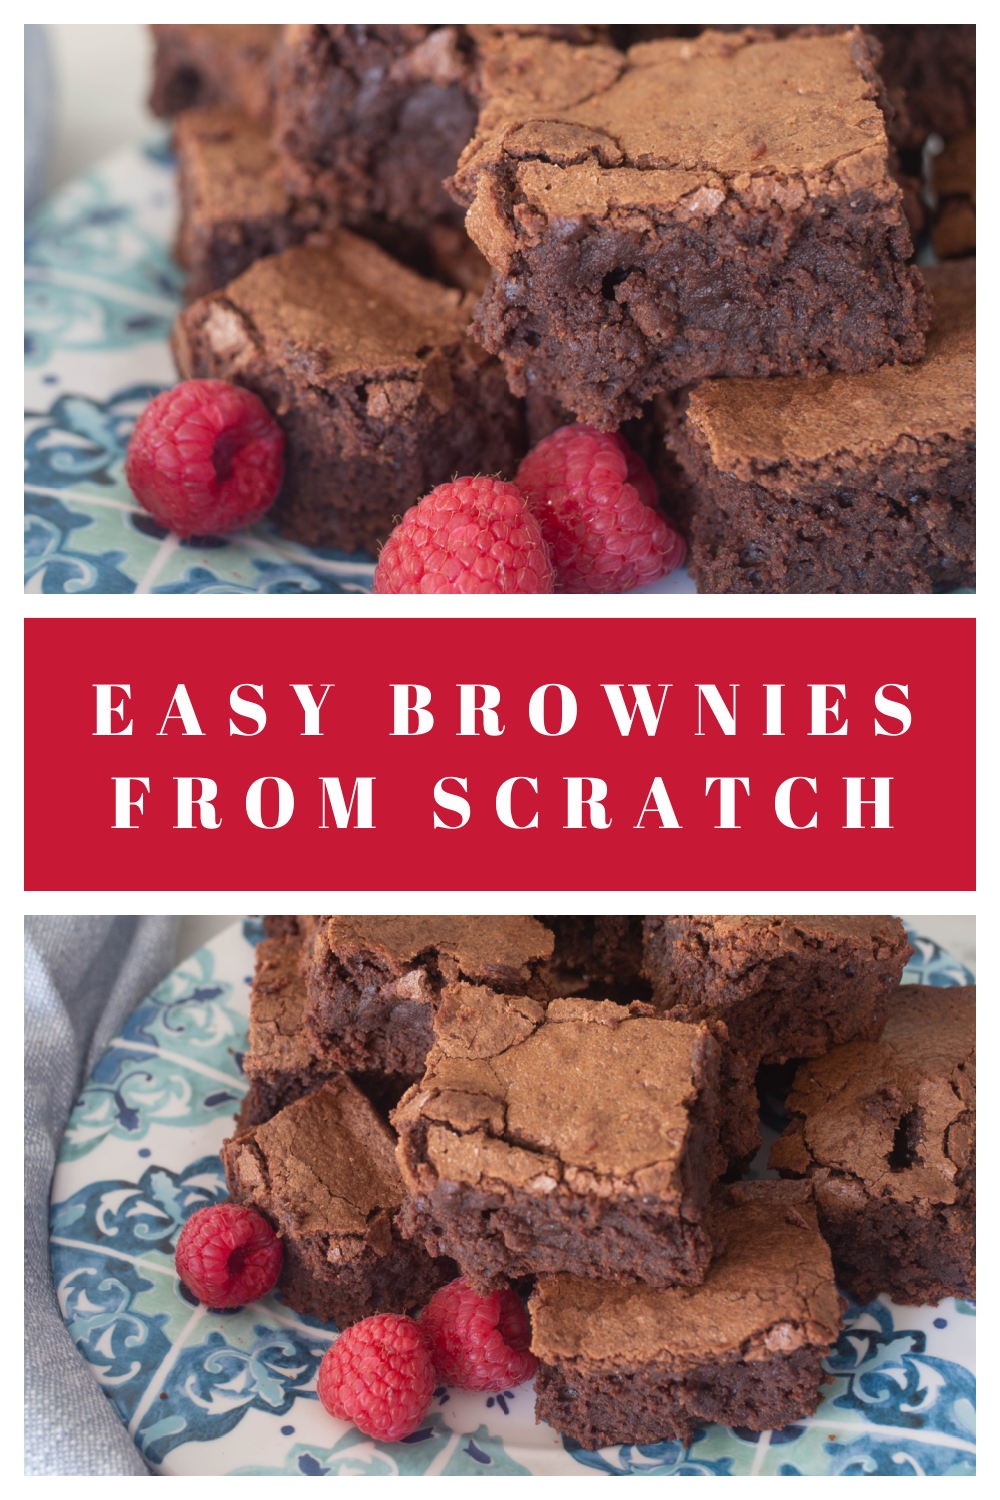 Easy Brownies from Scratch - Best Brownies from Scratch - How to Make Brownies for Beginners - Brownie Recipe with Cocoa Powder - Chocolate Chip Brownies - Homemade Brownies from Scratch - How to Make Brownies from Scratch